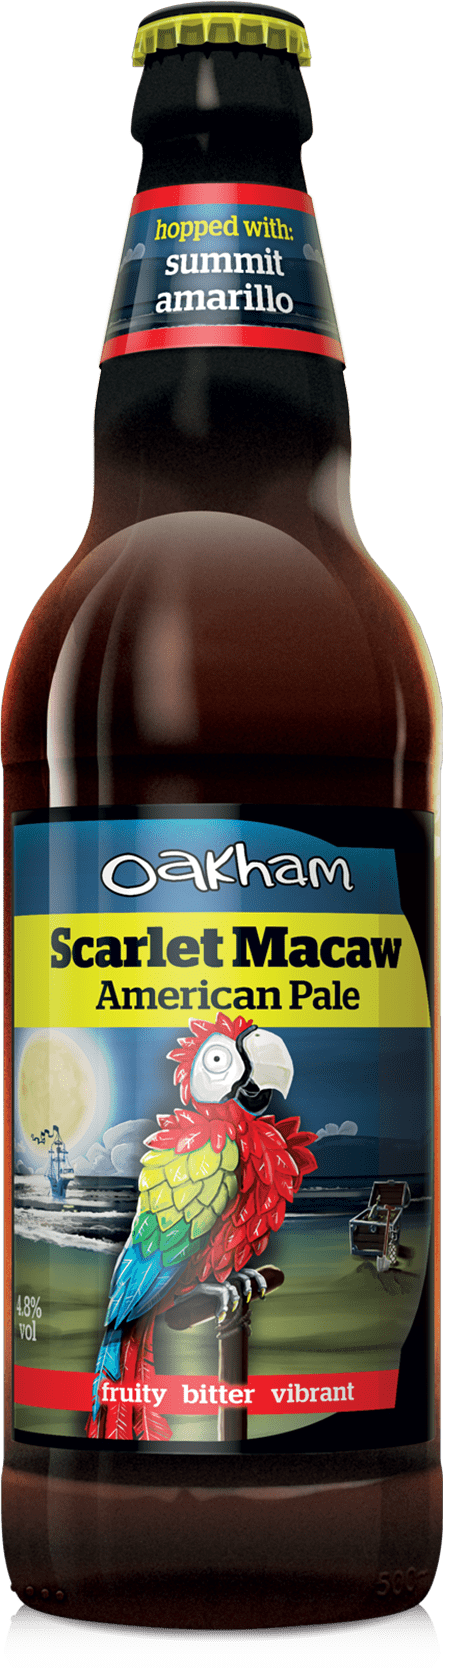 Core Beers - Scarlet Macaw